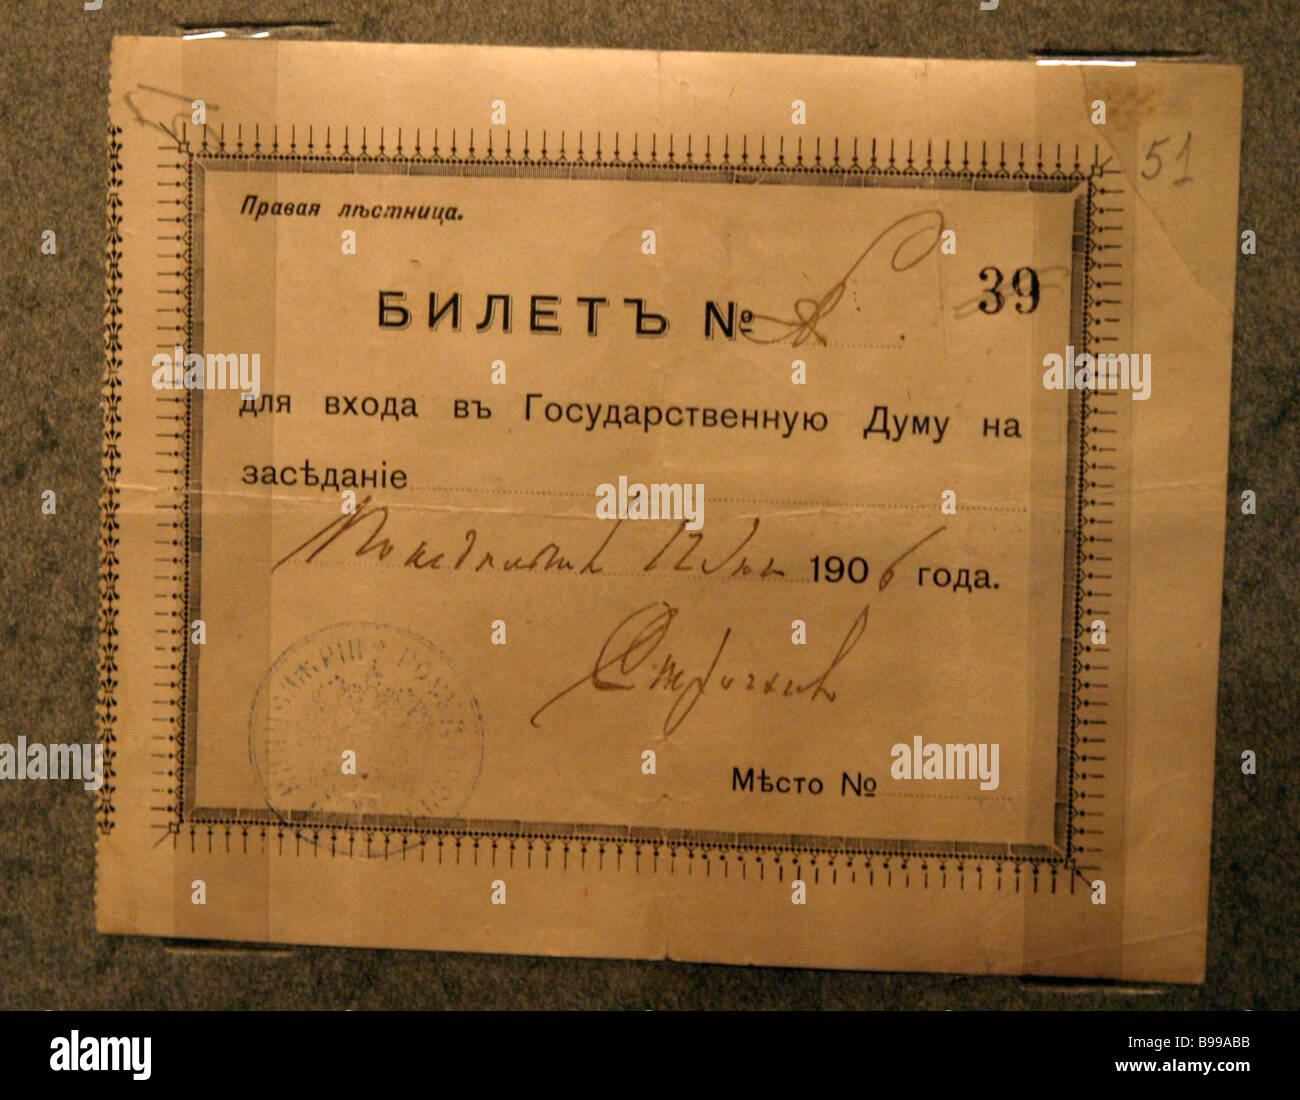 Admission pass to the State Duma 1906 Exhibited at the First revolution First Parliament exhibition opened in the - Stock Image